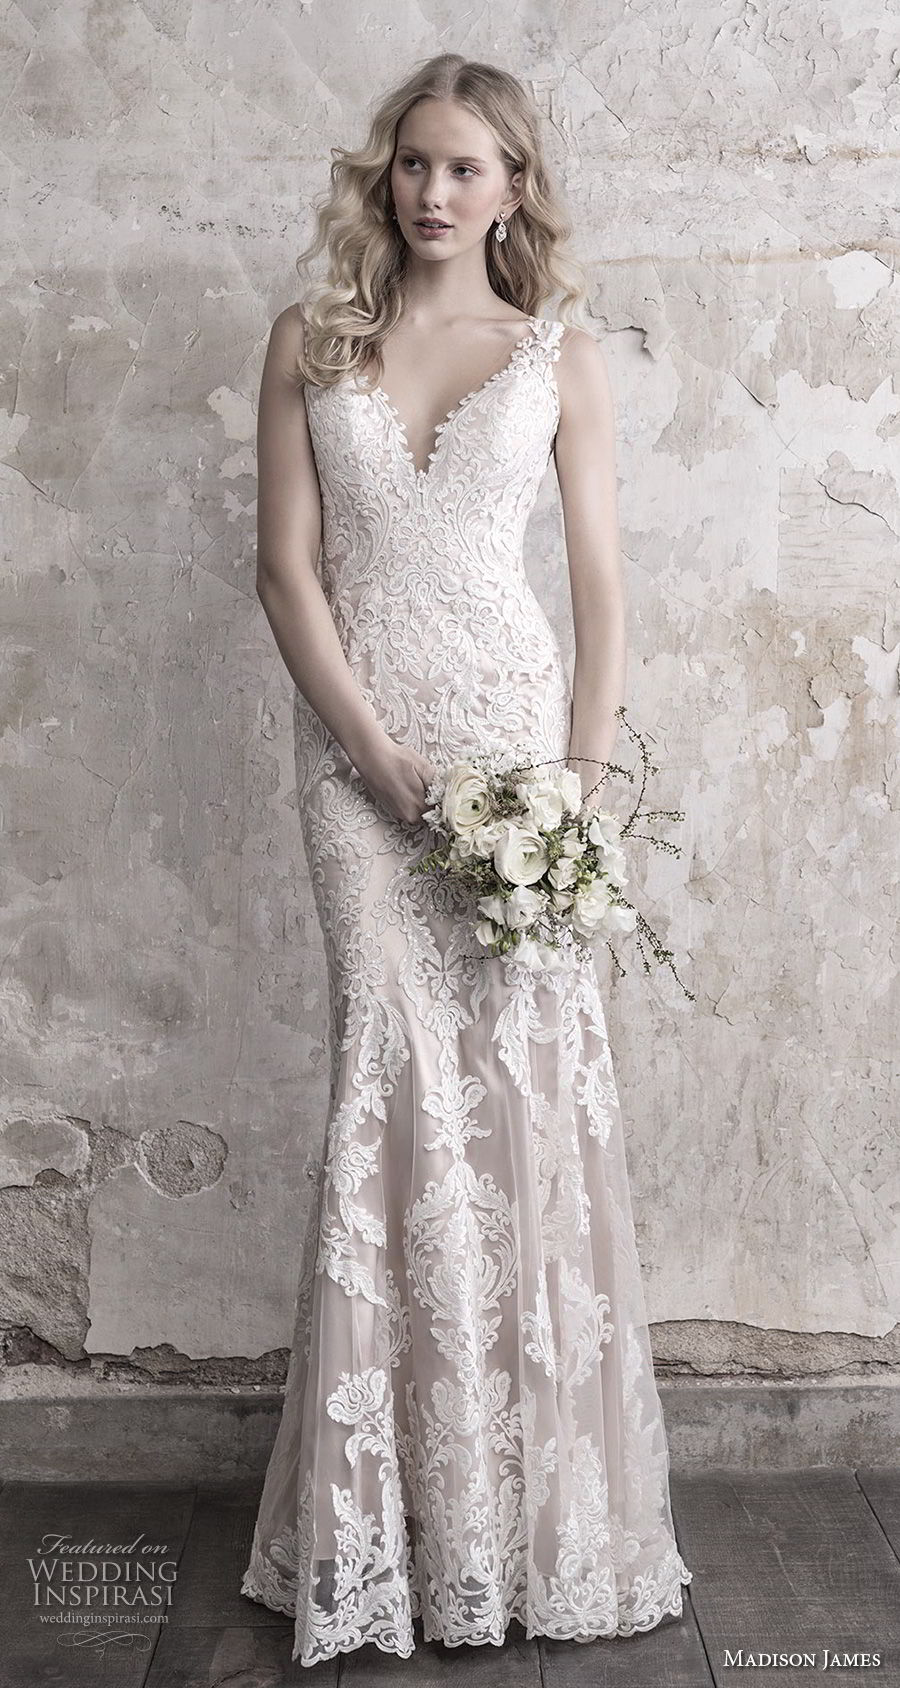 madison james fall 2018 bridal sleeveless with strap deep sweetheart neckline full embellishment elegant sheath wedding dress sheer button back long train (11) mv